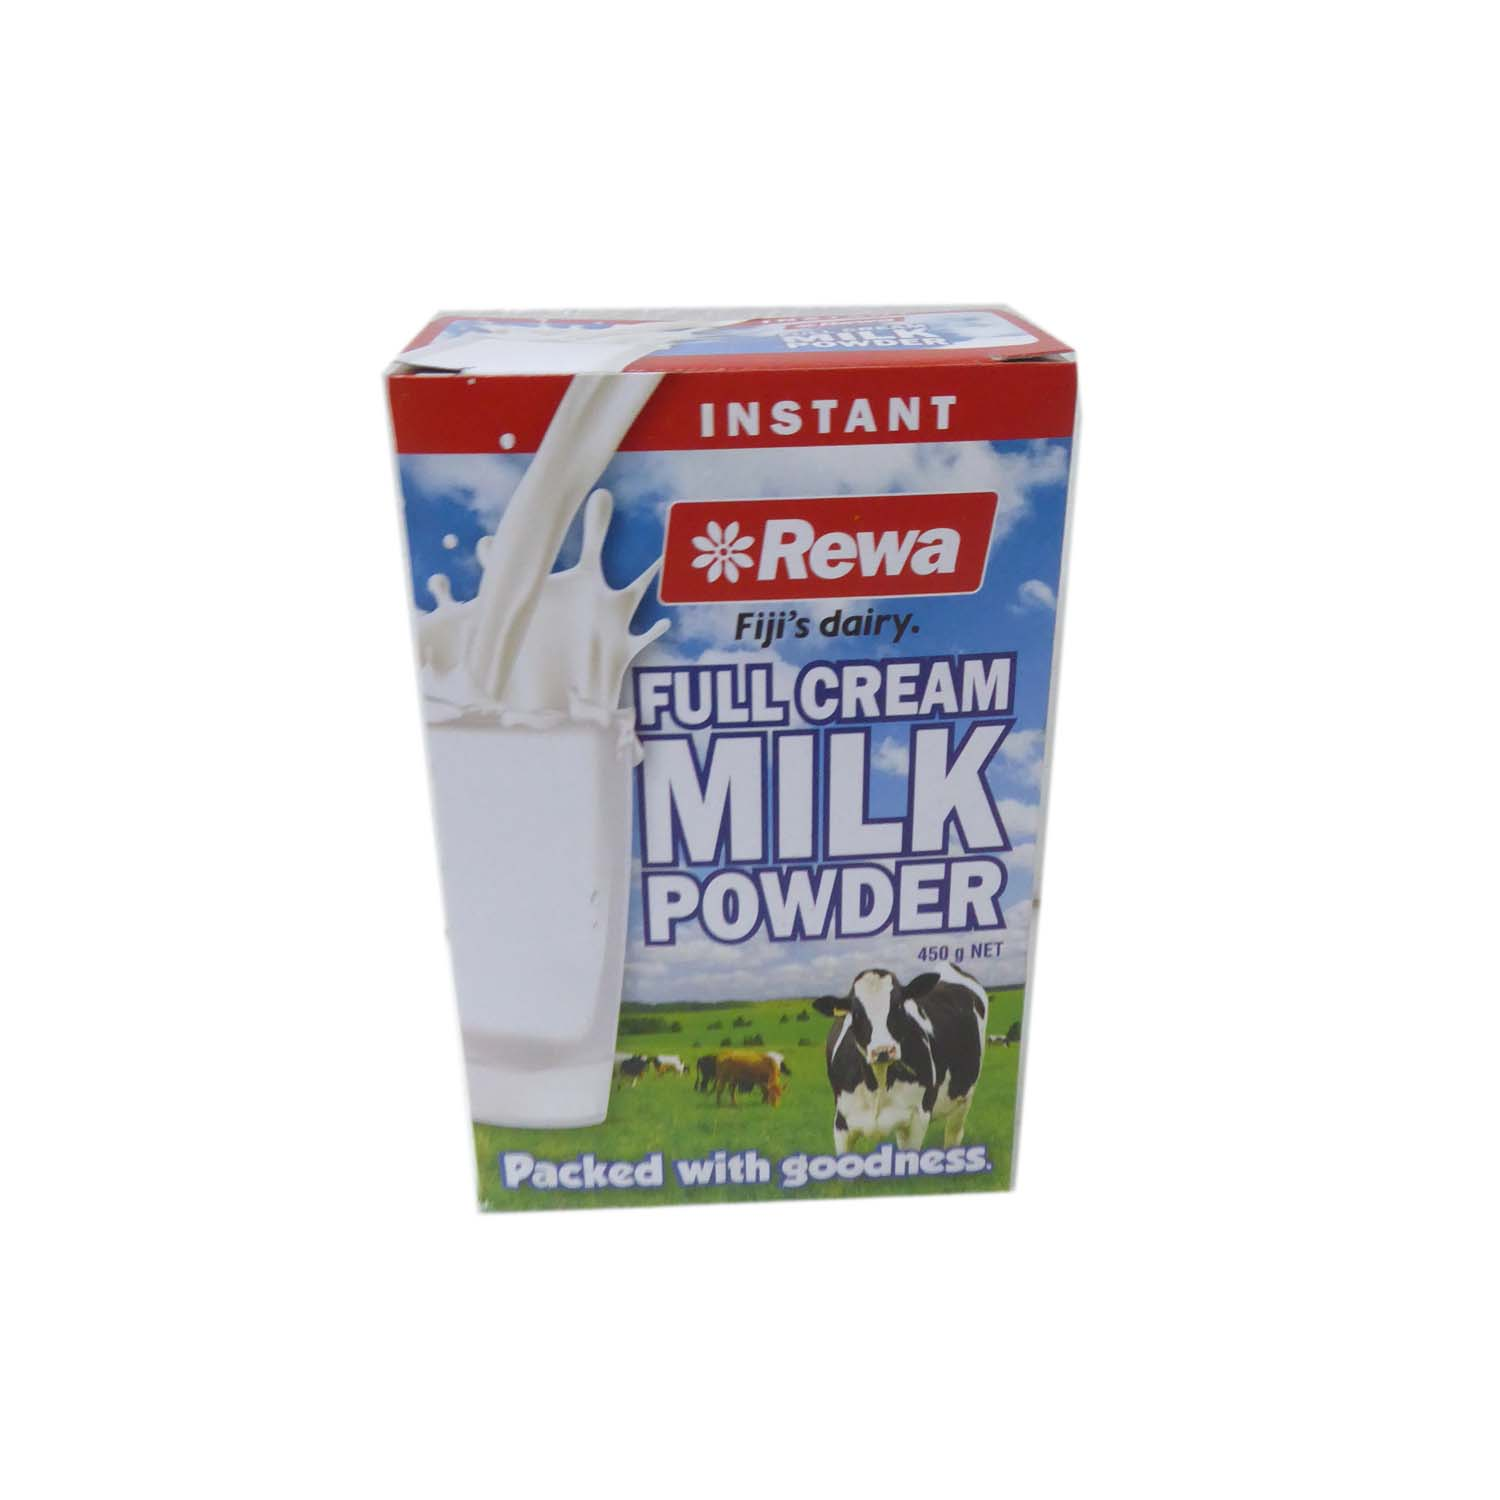 Rewa Powdered Milk 450g